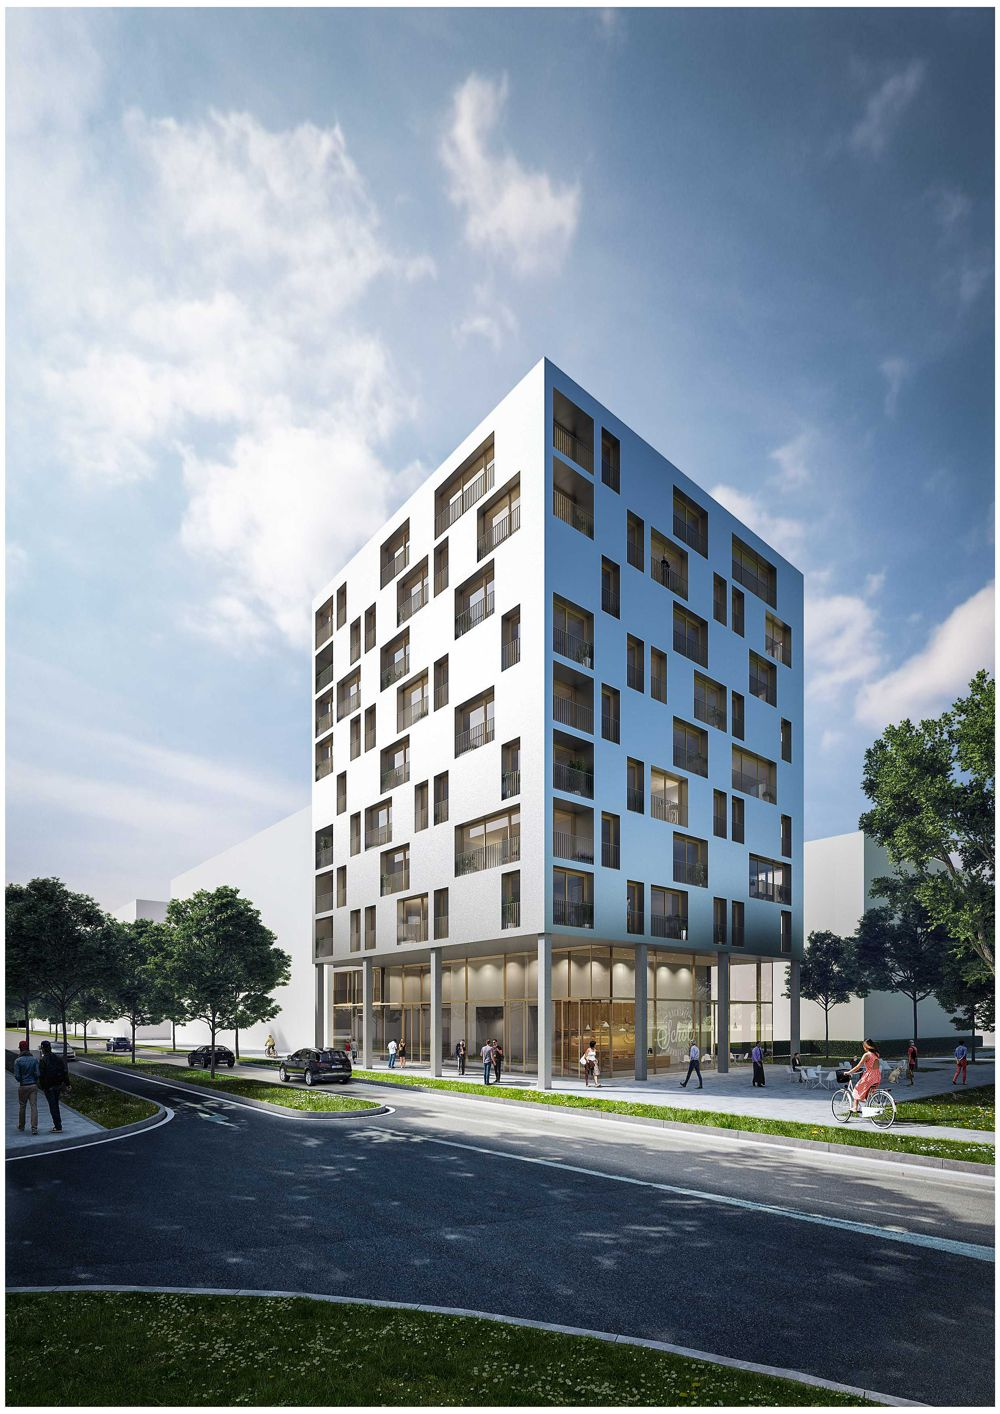 STRABAG subsidiary ZÜBLIN starts construction of Germany's first timber high-rise